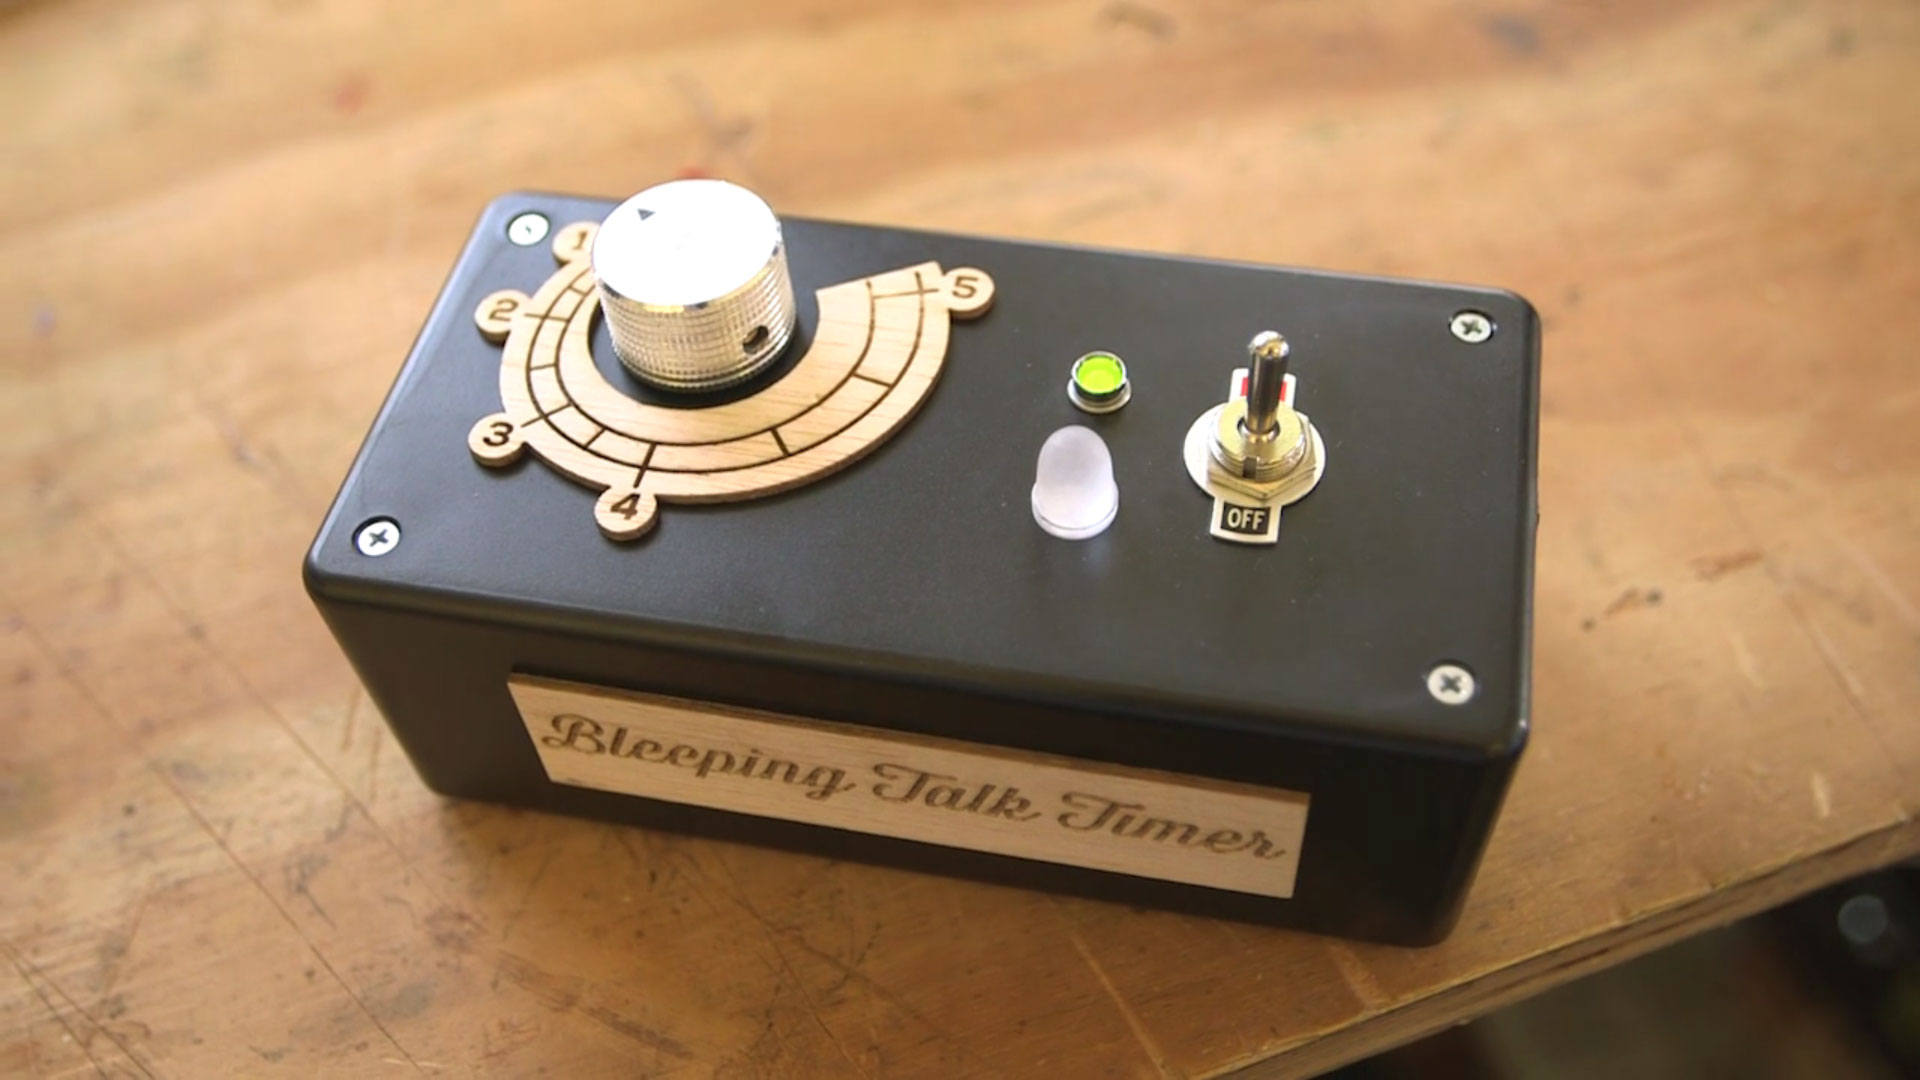 Bleeping Talk Timer | Make: